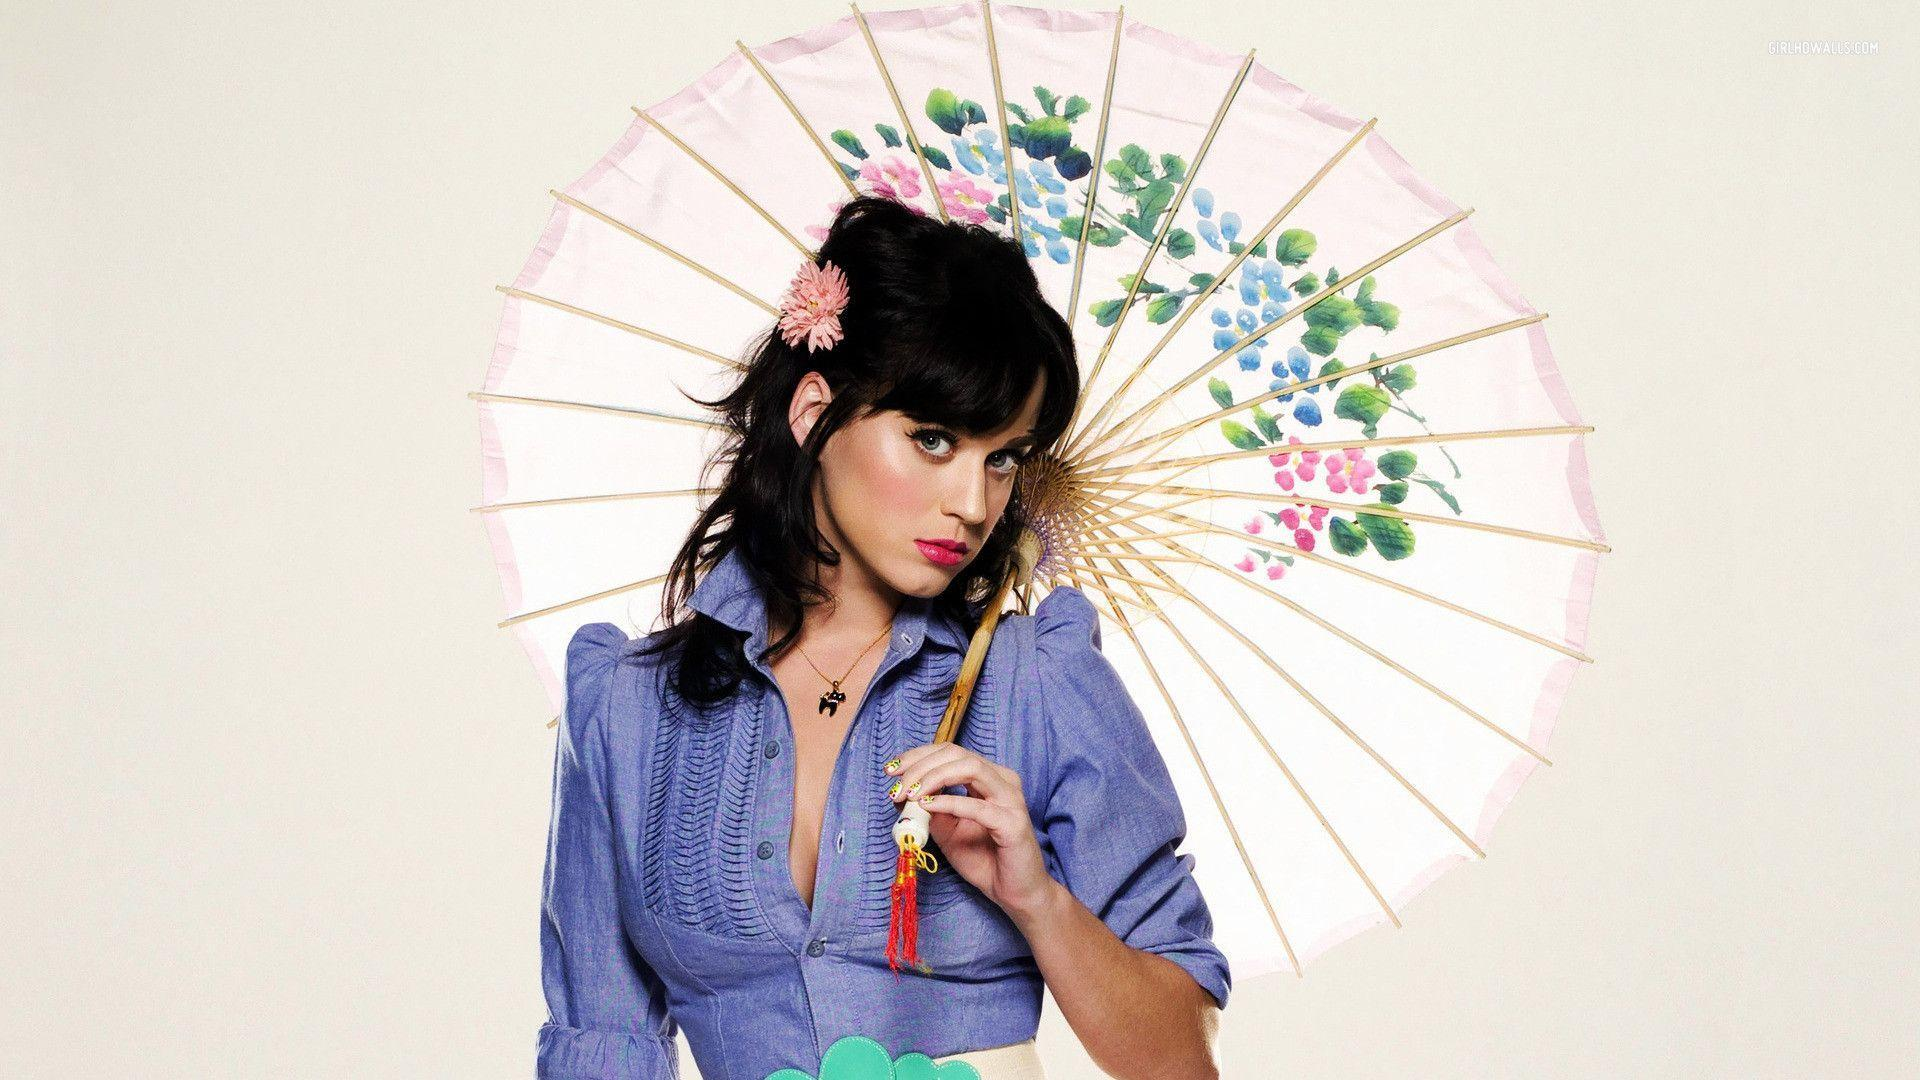 katy perry wallpaper 1080p - photo #20